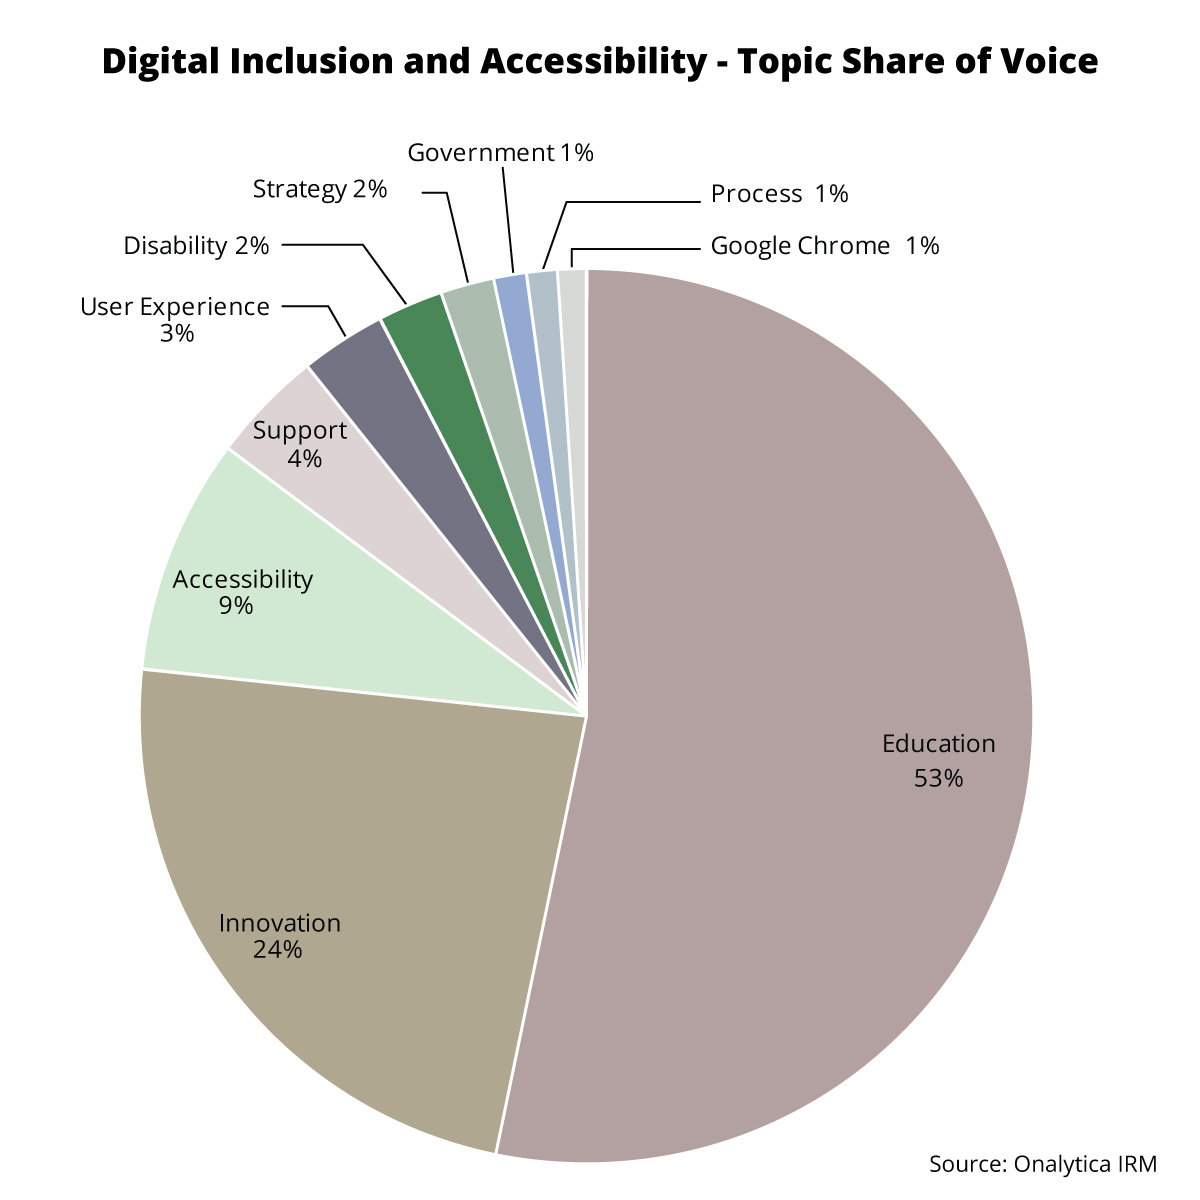 Onalytica - Digital Inclusion and Accessibility Top 100 Influencers and Brands - Topic Share of Voice